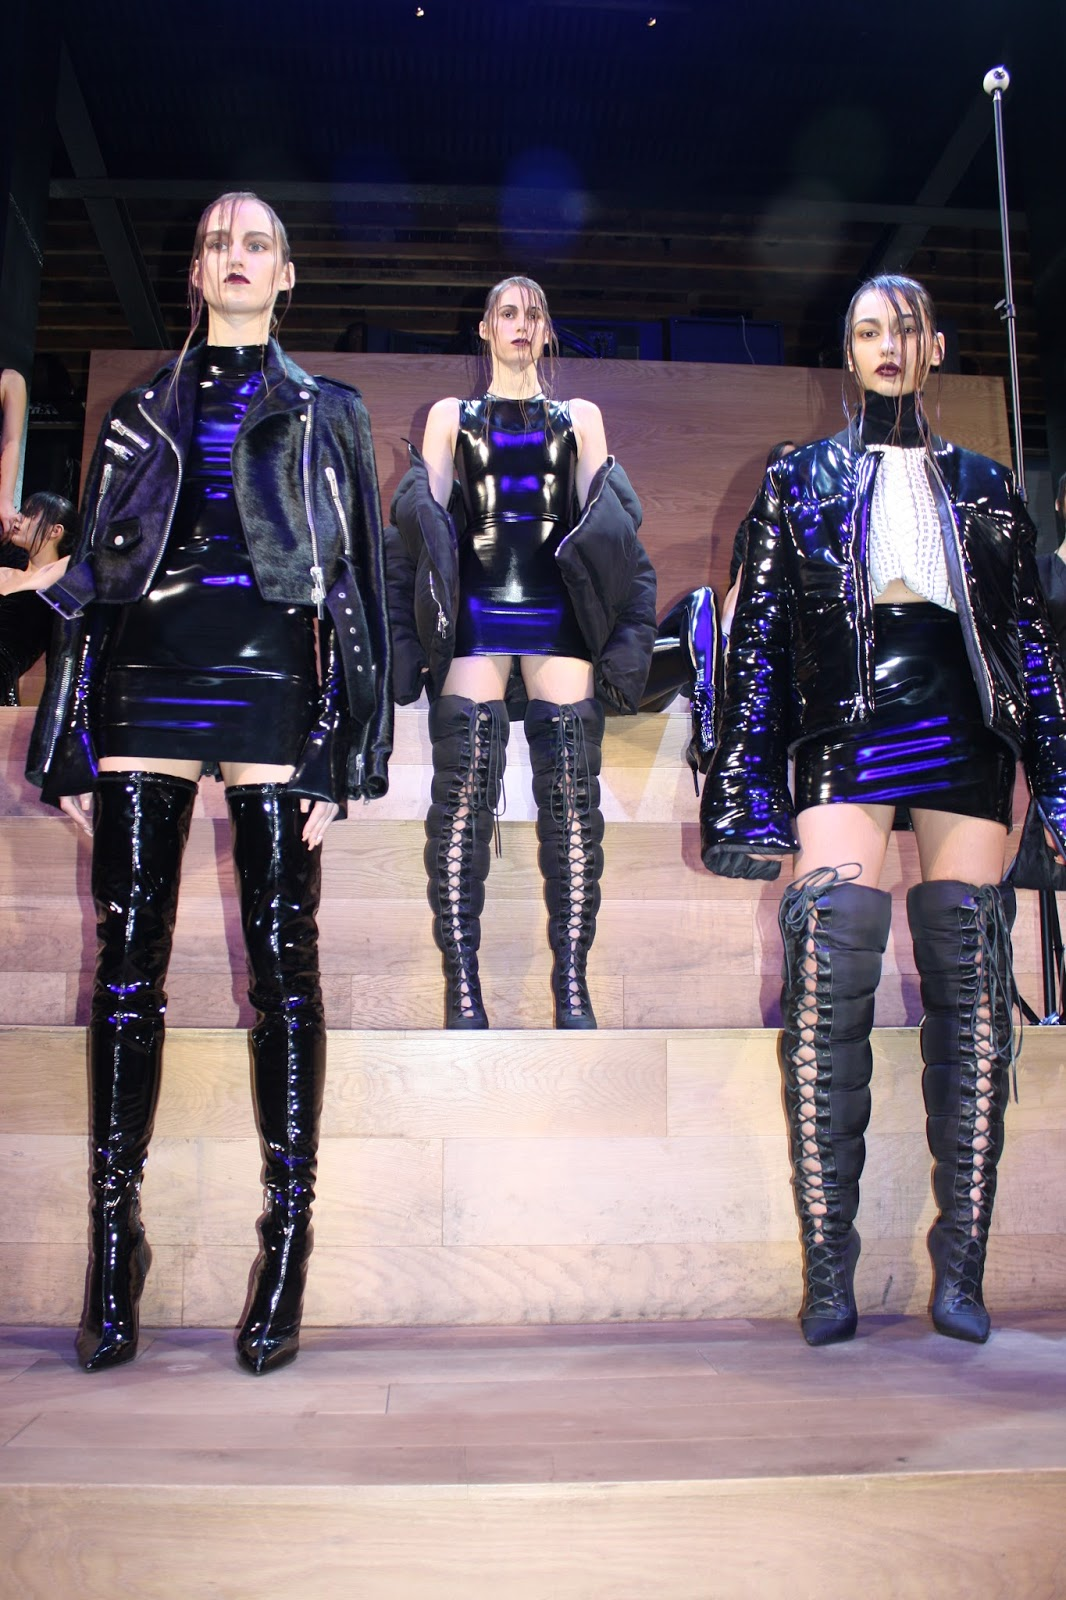 cfba33f53d Laquan Smith presented a smashing presentation in Meatpacking district New  York City for his Fall Winter ready-to-wear collection. The Samsung 837  space was ...